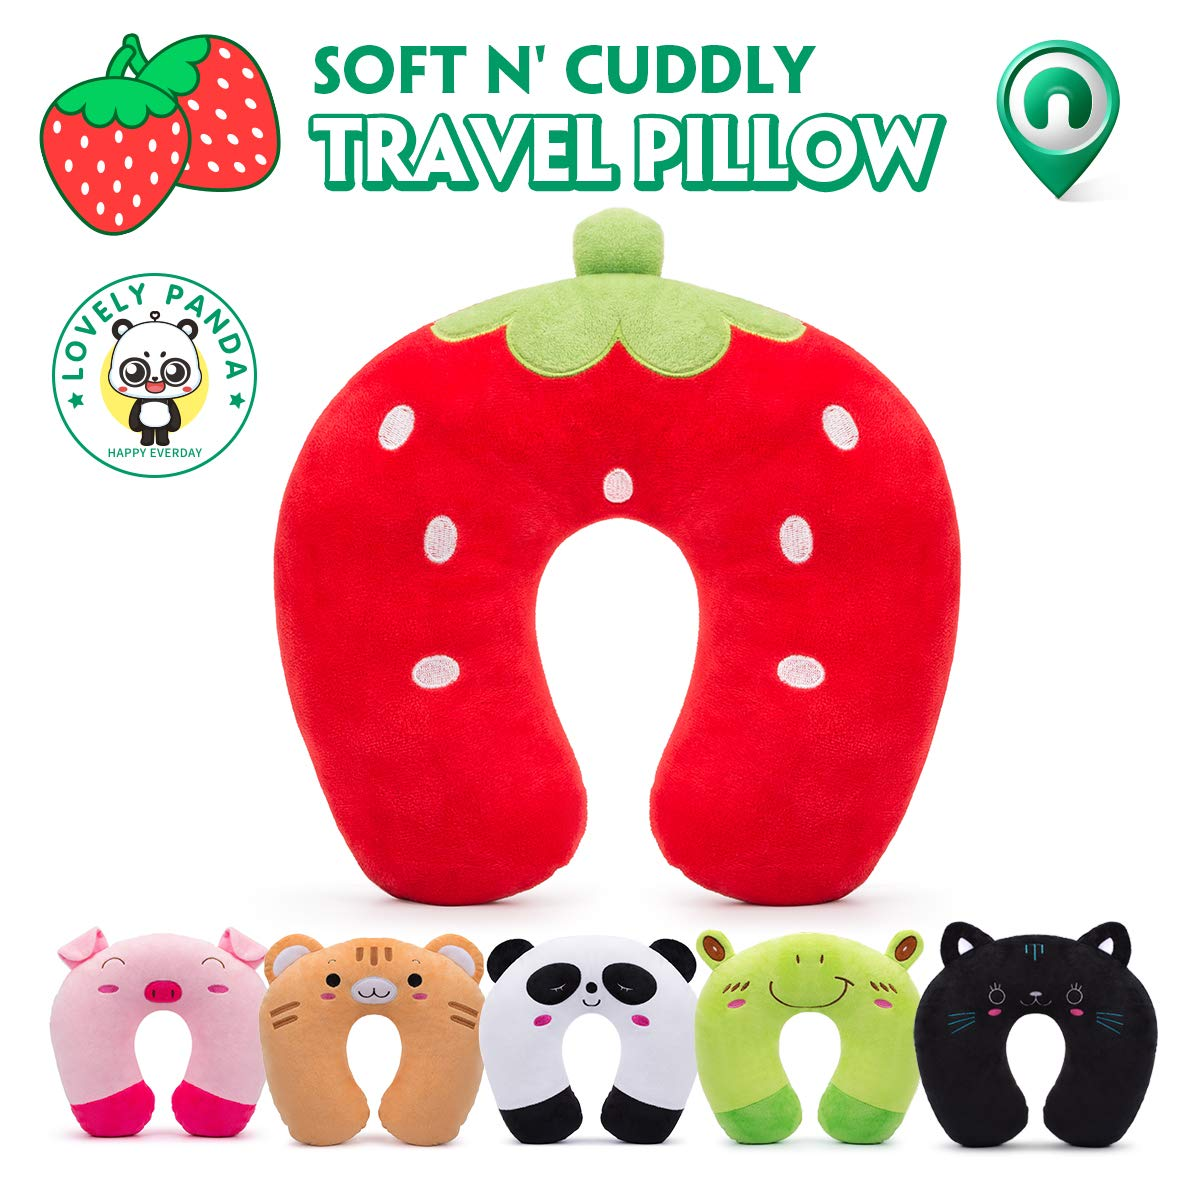 HOMEWINS Travel Pillow for Kids Toddlers - Soft Neck Head Chin Support Pillow, Cute Animal, Comfortable in Any Sitting Position for Airplane, Car, Train, Machine Washable, Children Gifts (Strawberry)